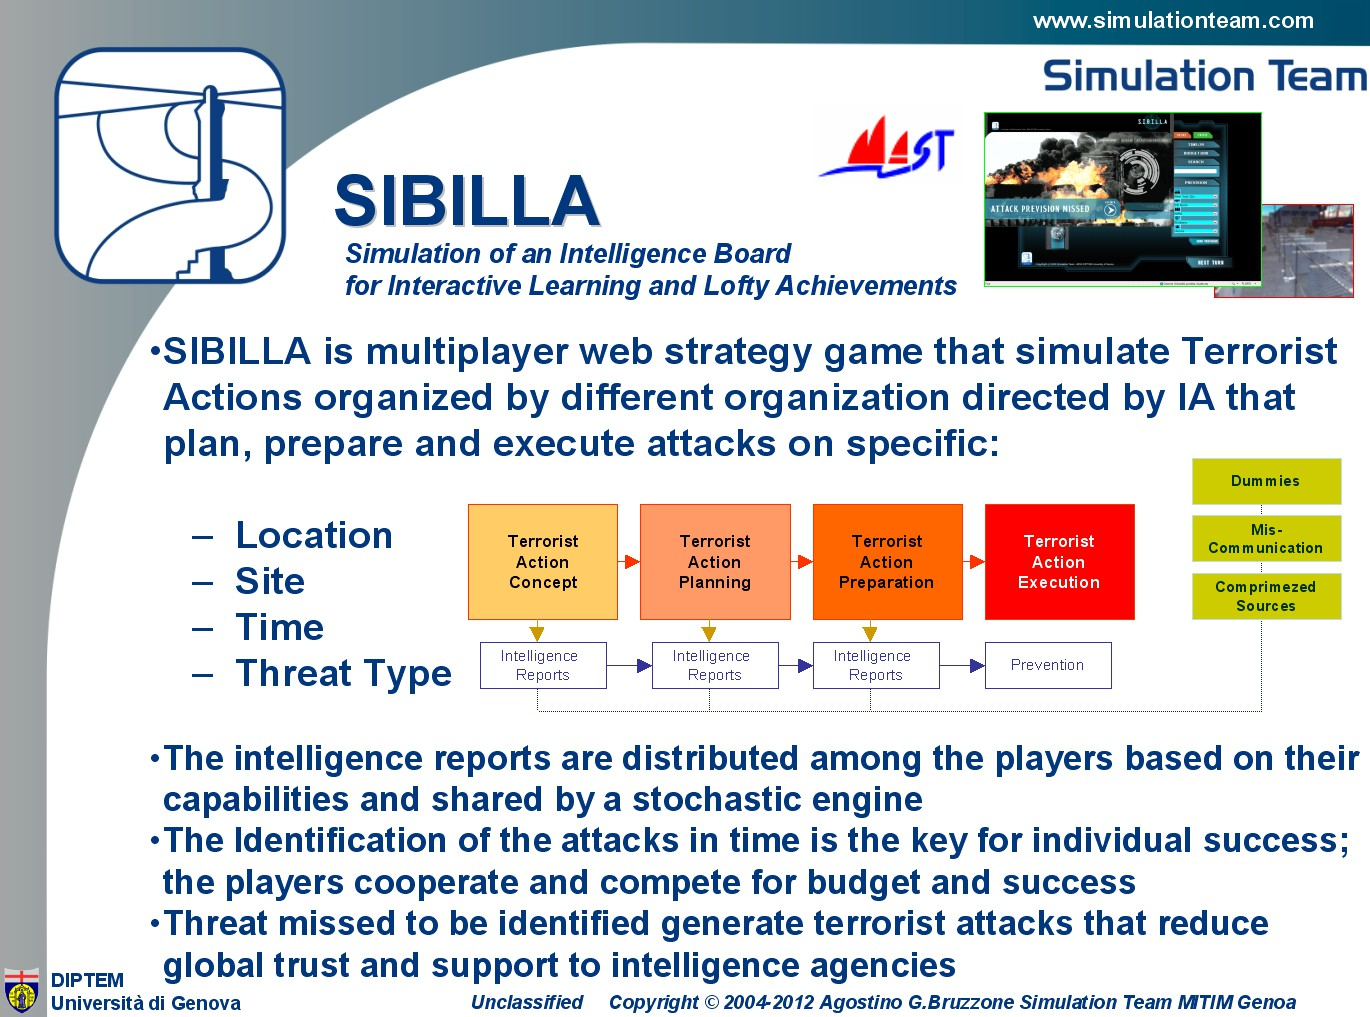 Web Based Multi Player Serious Game for Simulating Homeland Security and Using Intelligent Agents to plan Terrorist Attacks (i.e.CBRN, Cyber Attacks)